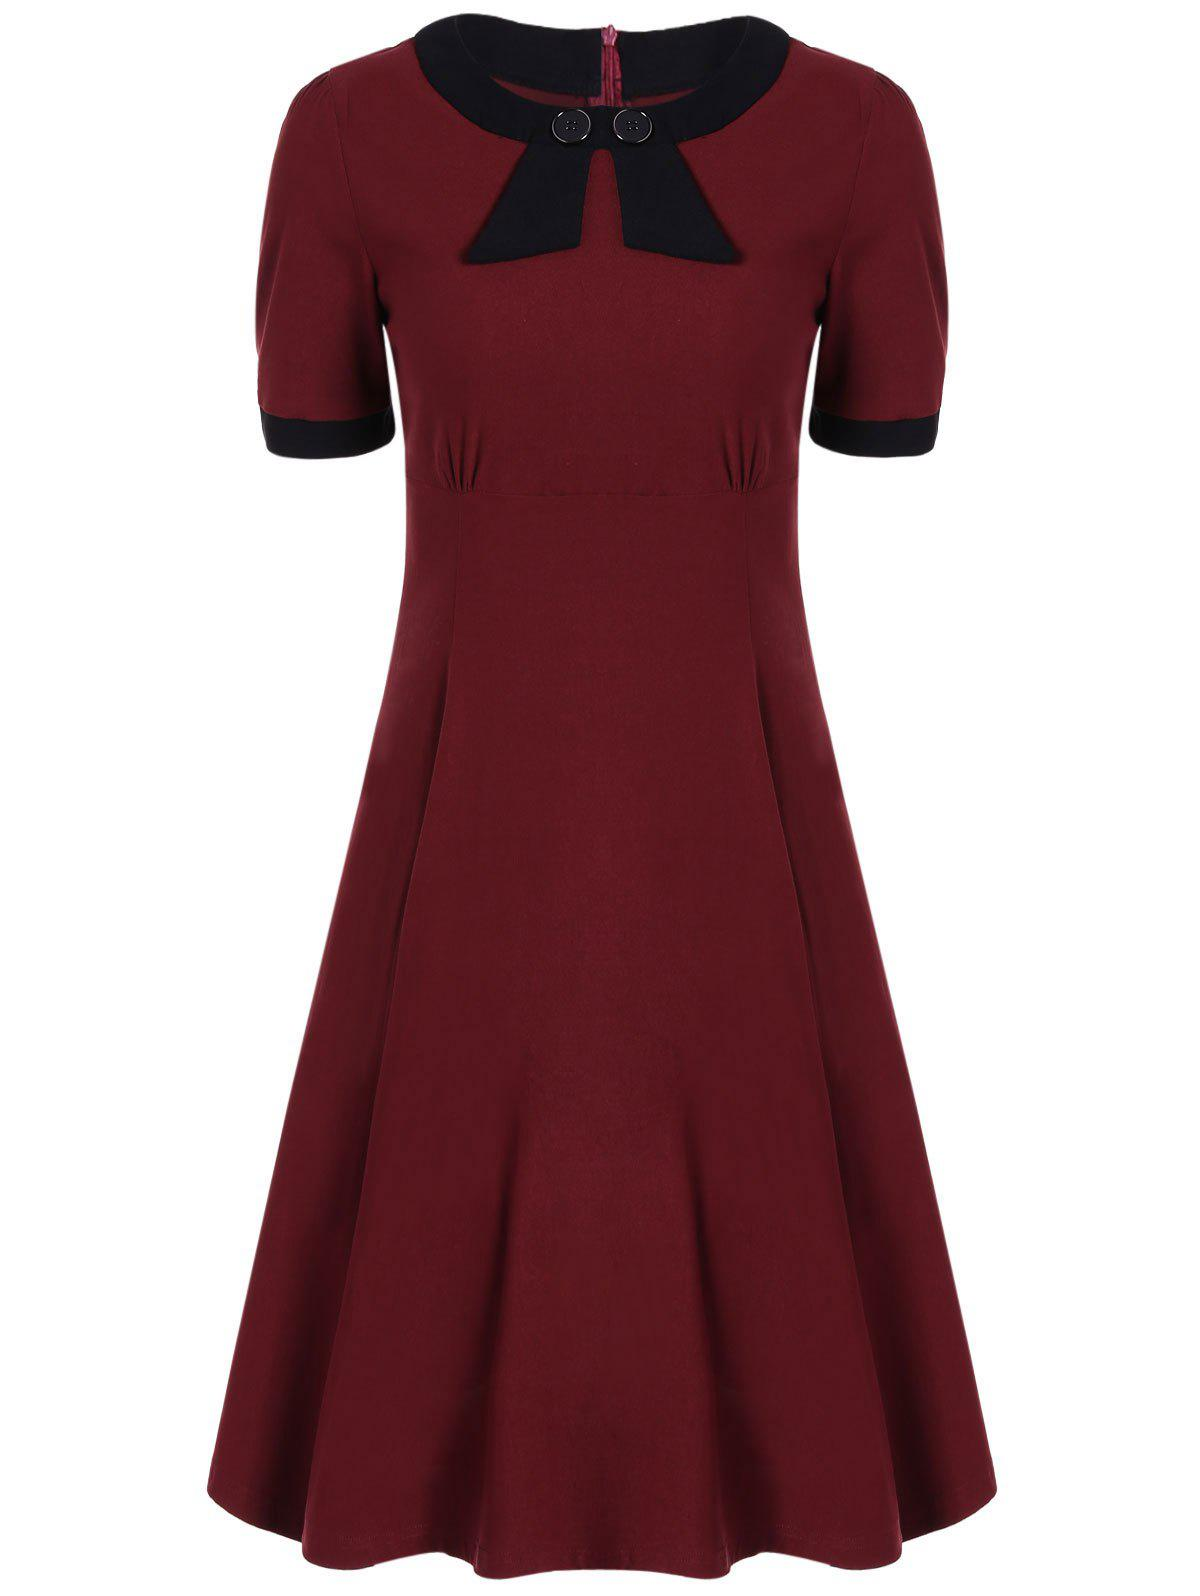 Retro High Waist Buttoned Contrast Color Dress - WINE RED XL